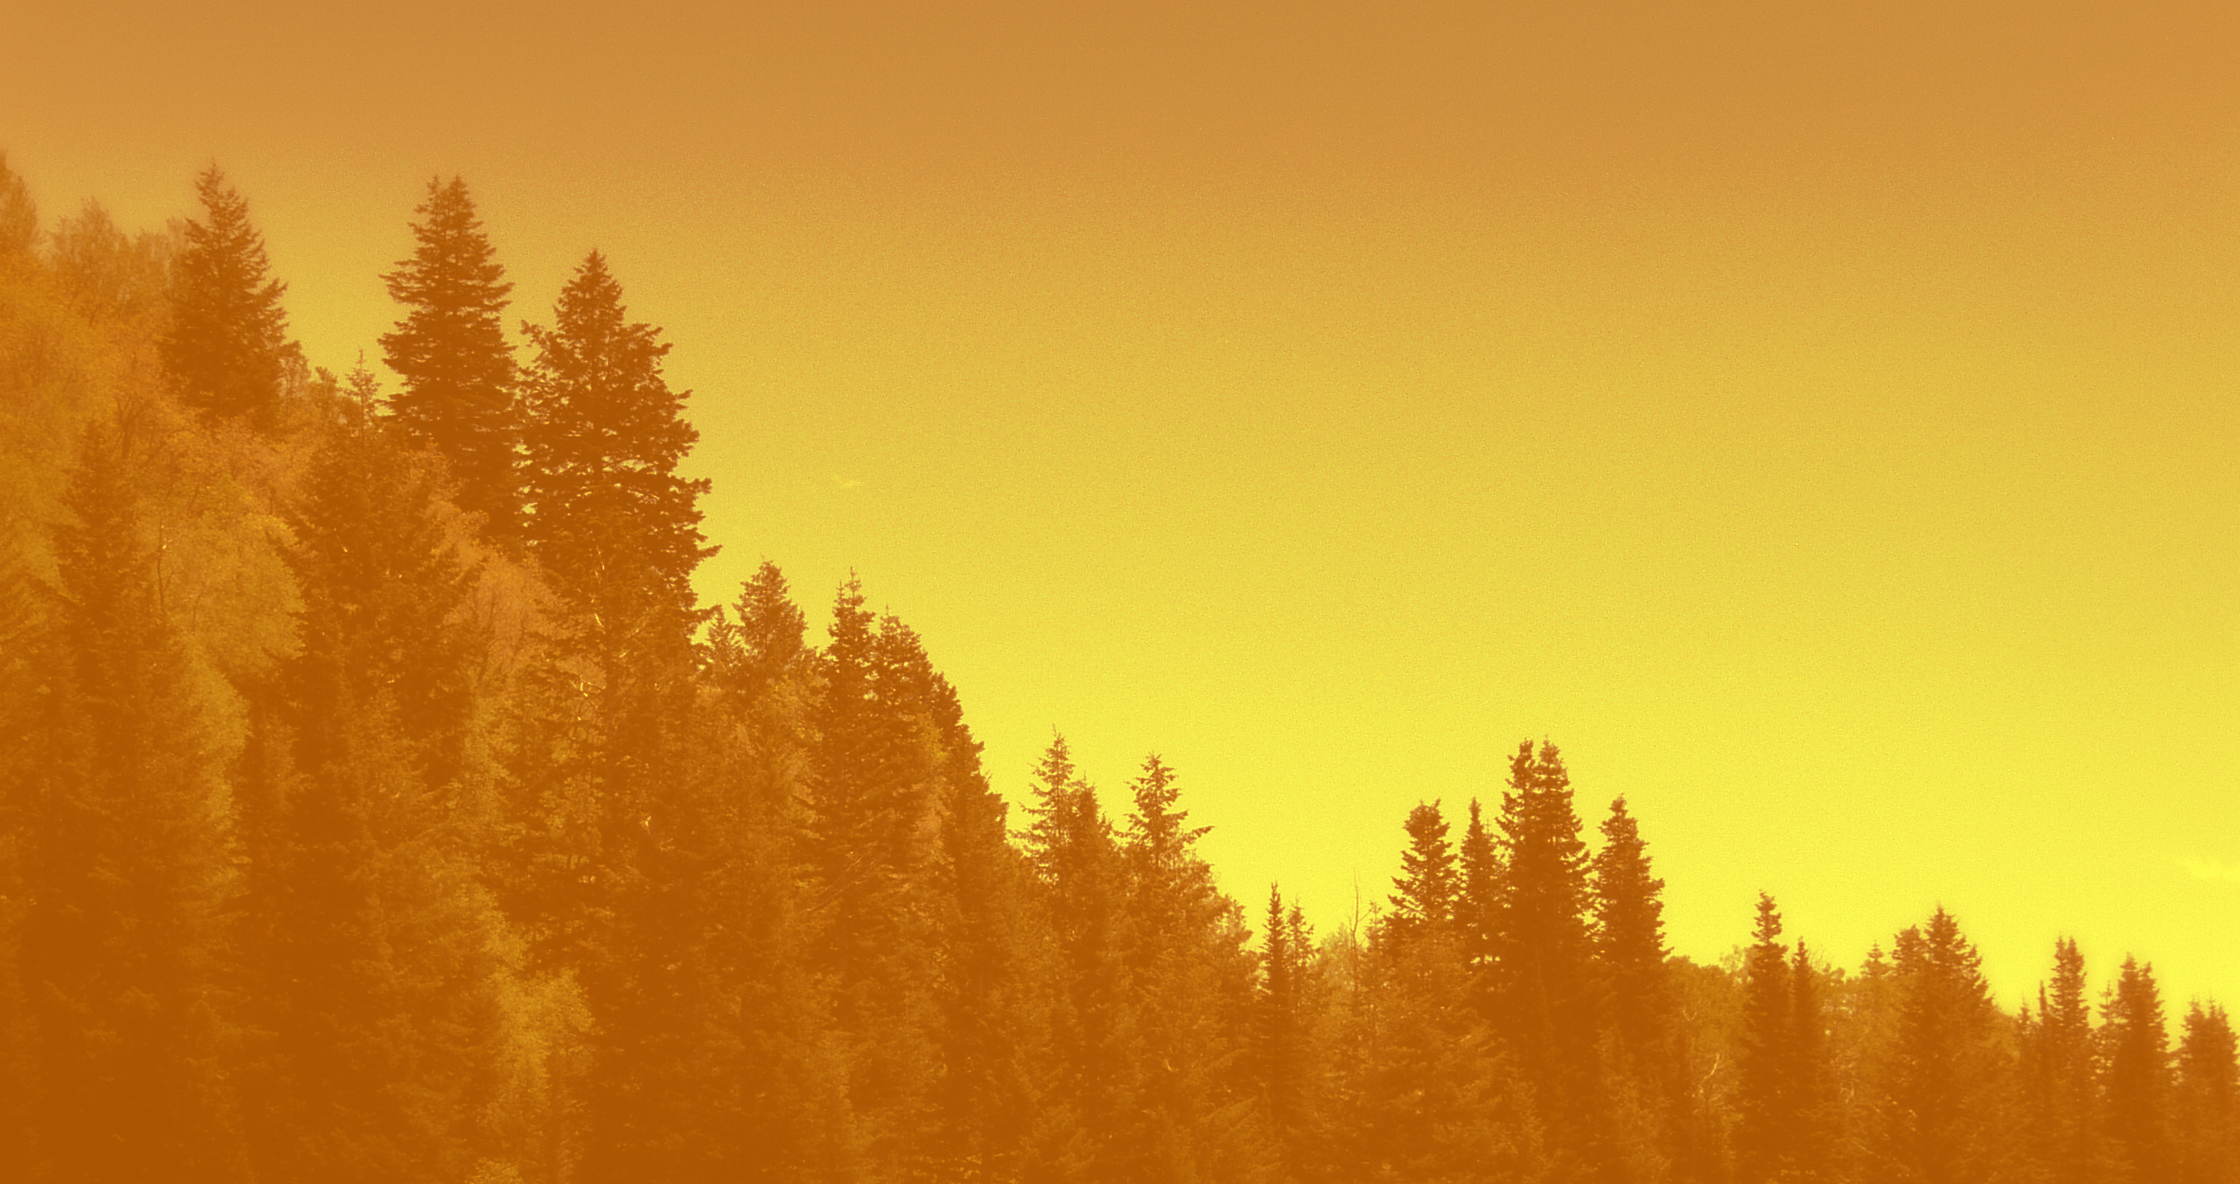 Mountain Trees Abstract Backgrounds Royalty   Stockazoo 2240x1184